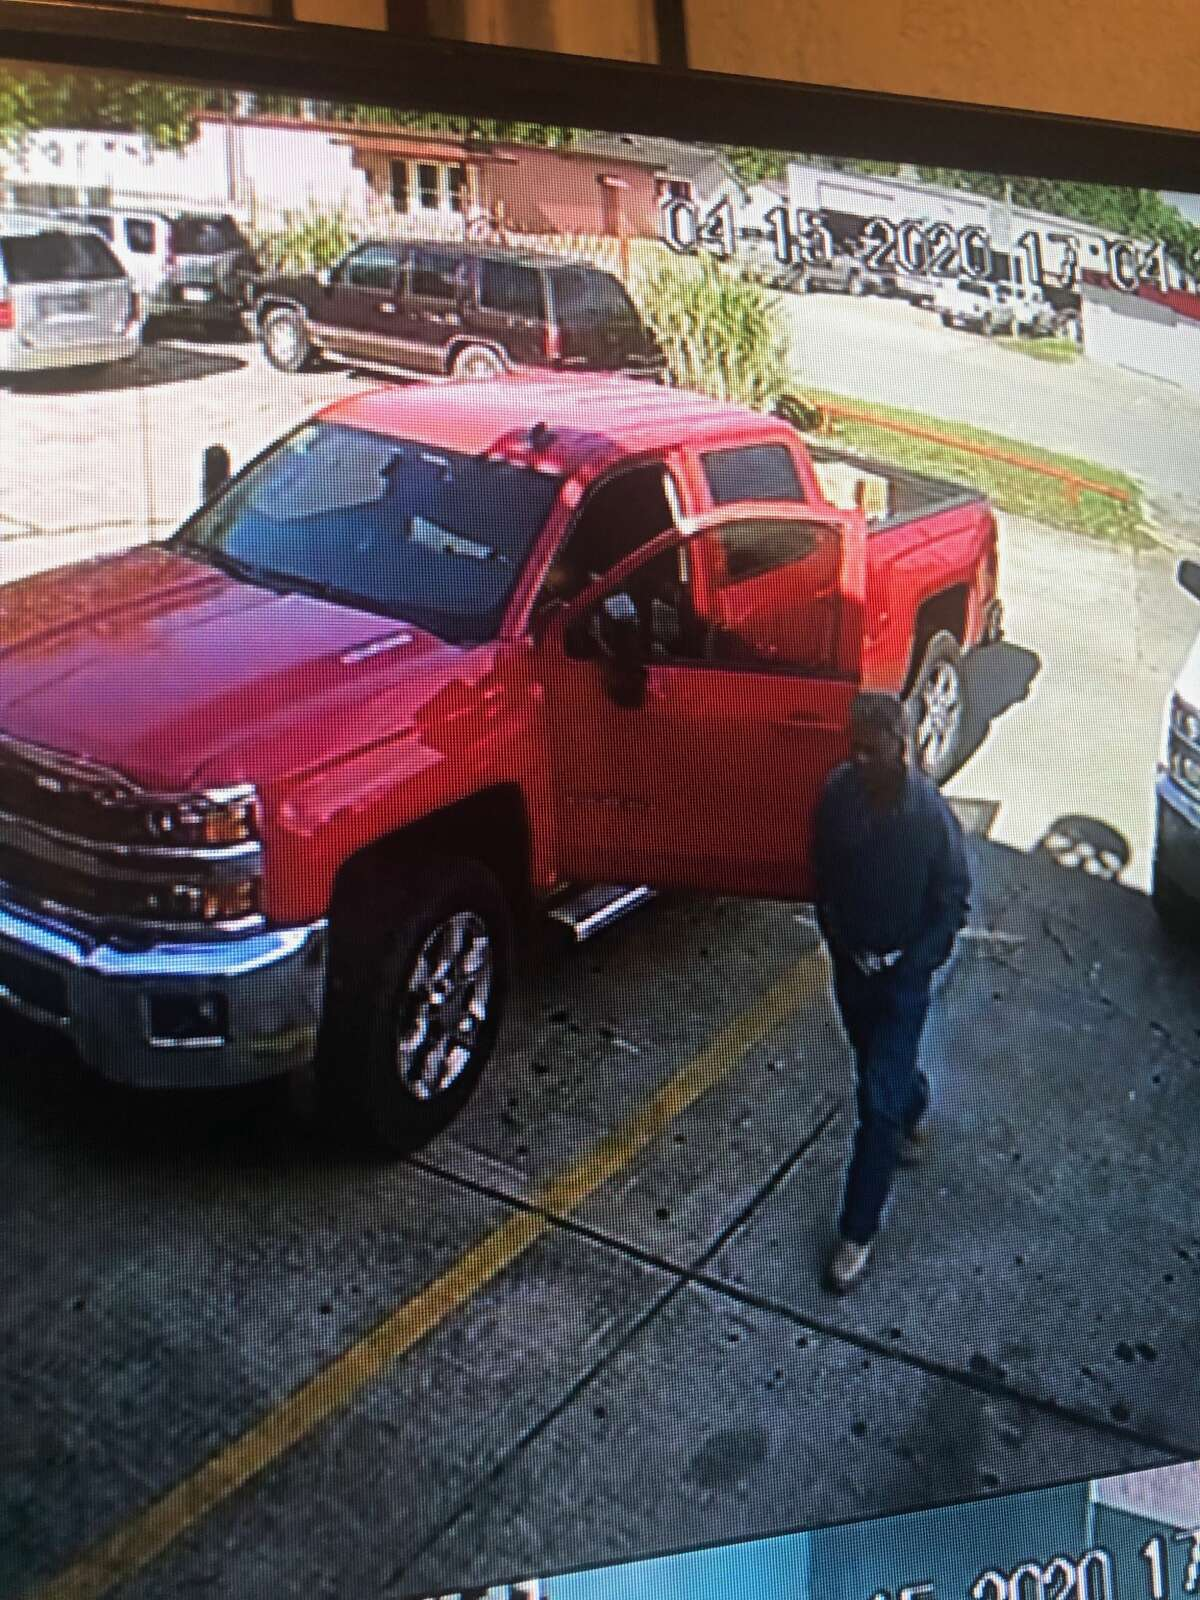 Witnesses said Maldonado fled in a red 2016 Chevrolet 2500 truck with a paper license plate that read 66503A8.